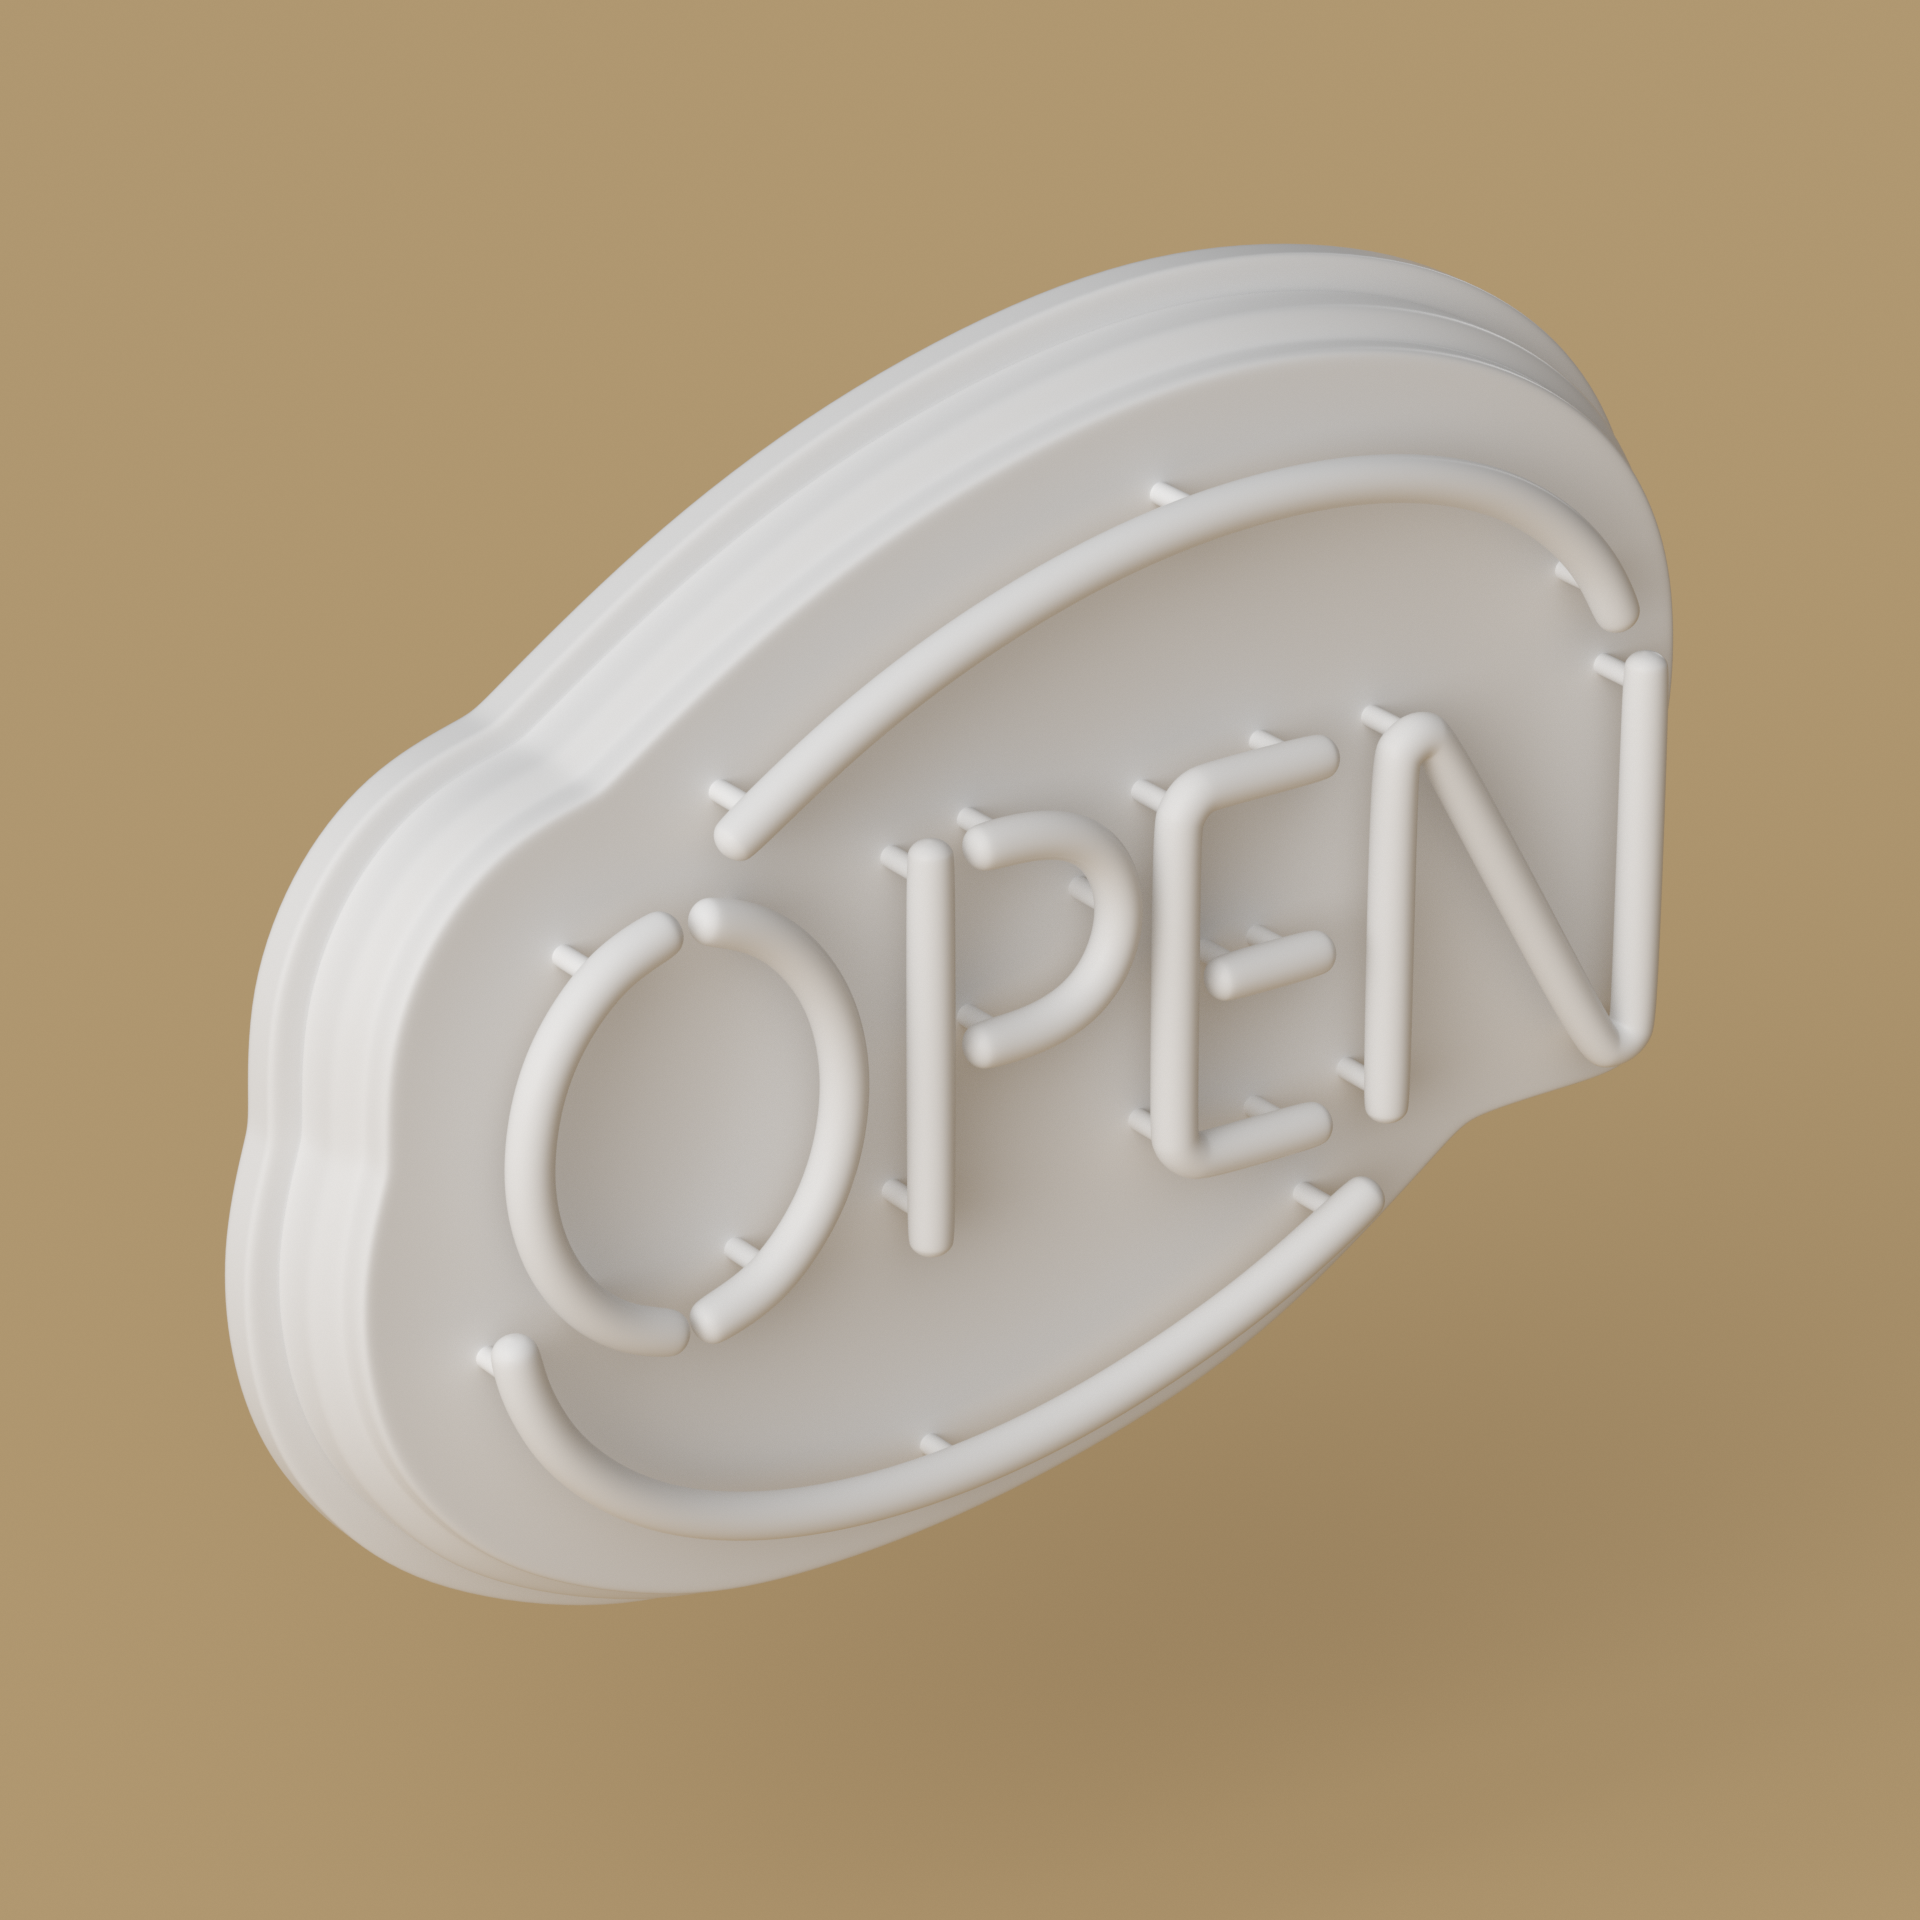 open_sign.png